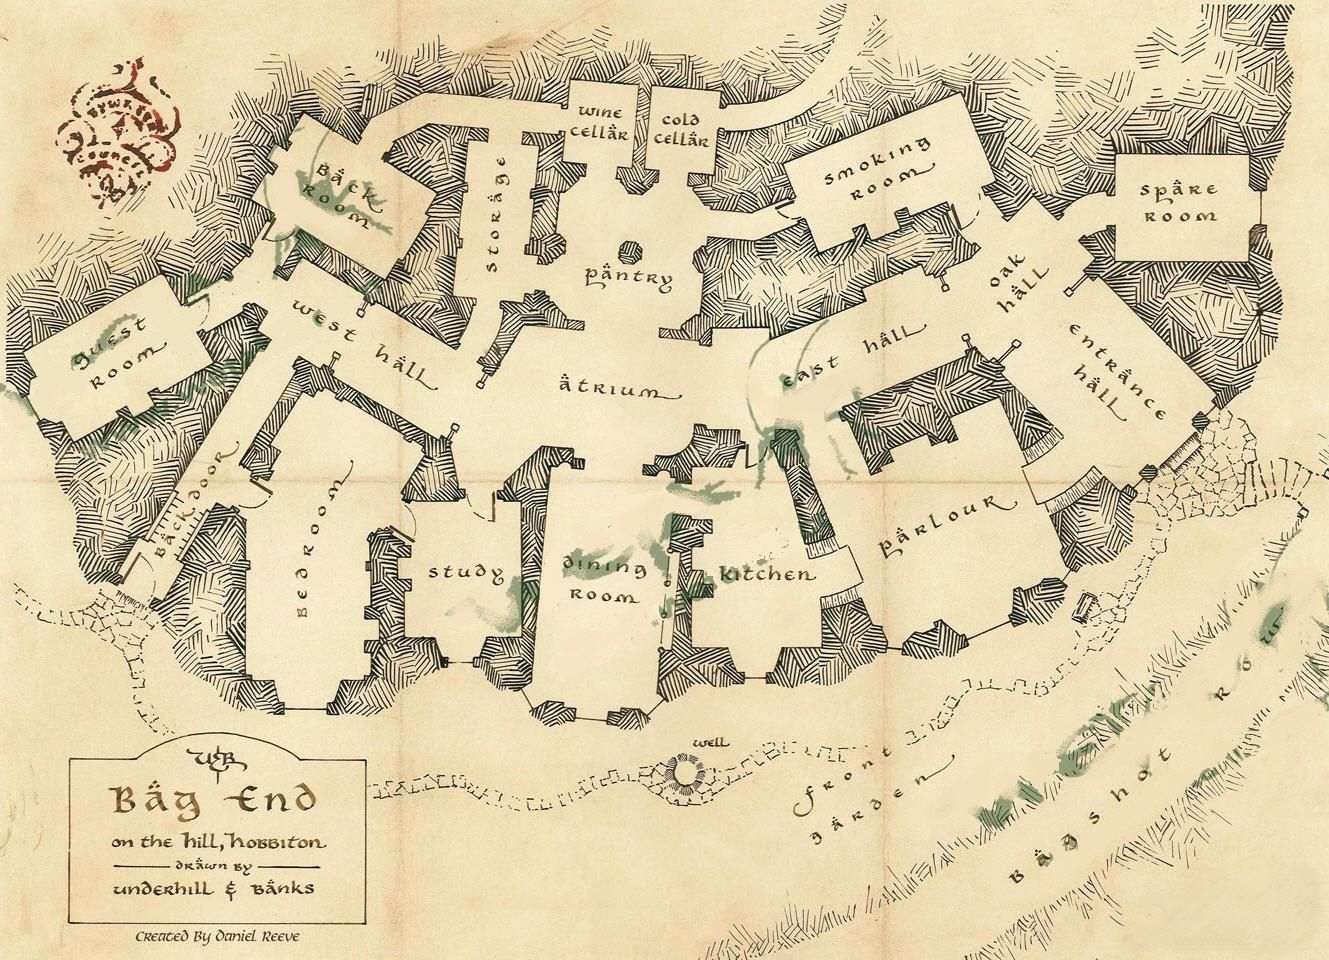 The Architectural Plan For Bag End The Earth Sheltered Home Of